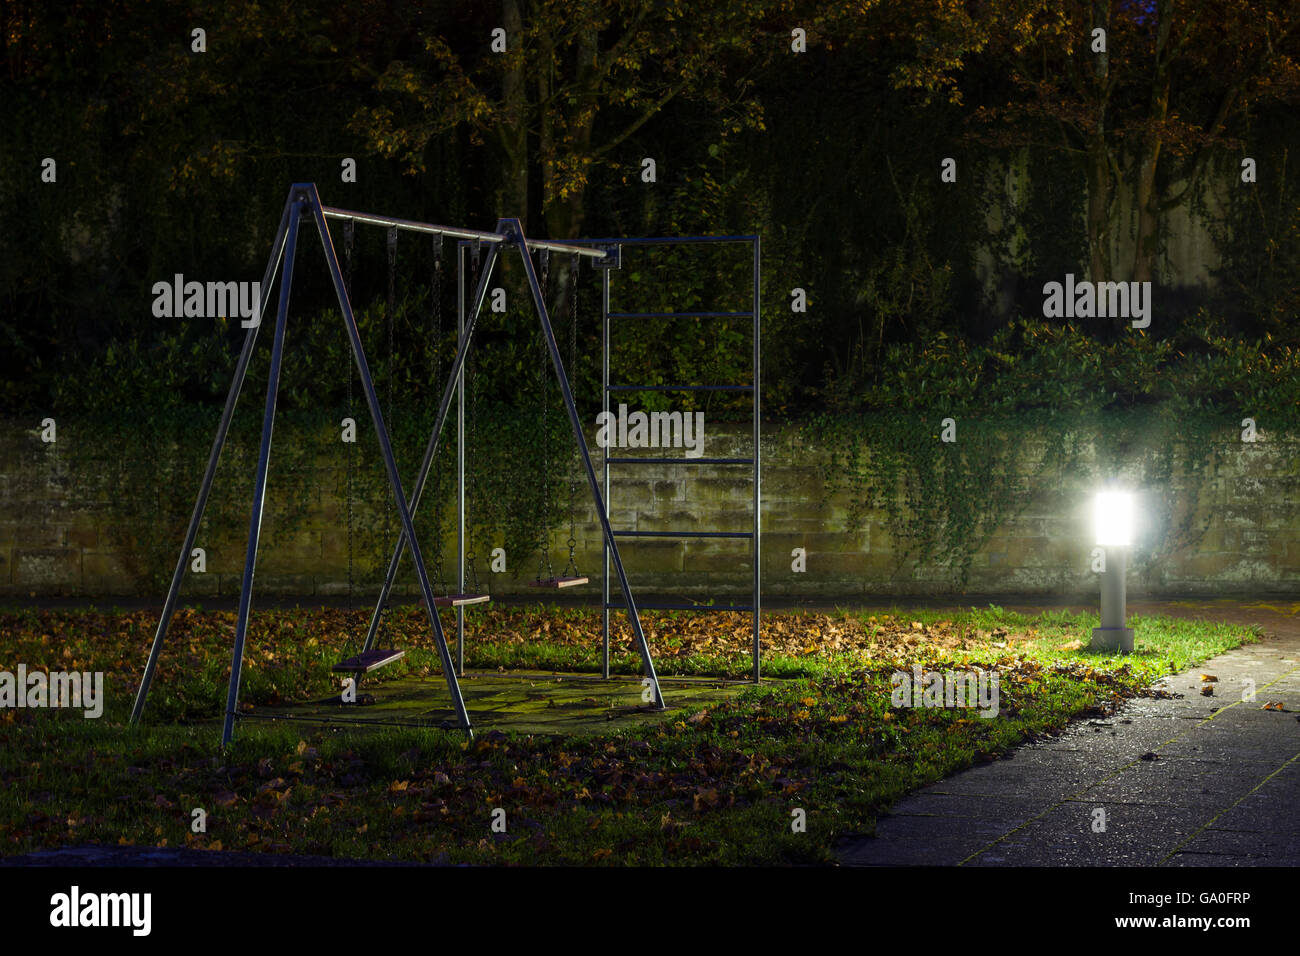 an empty playground with metal swings at night with fog and creepy atmosphere - Stock Image